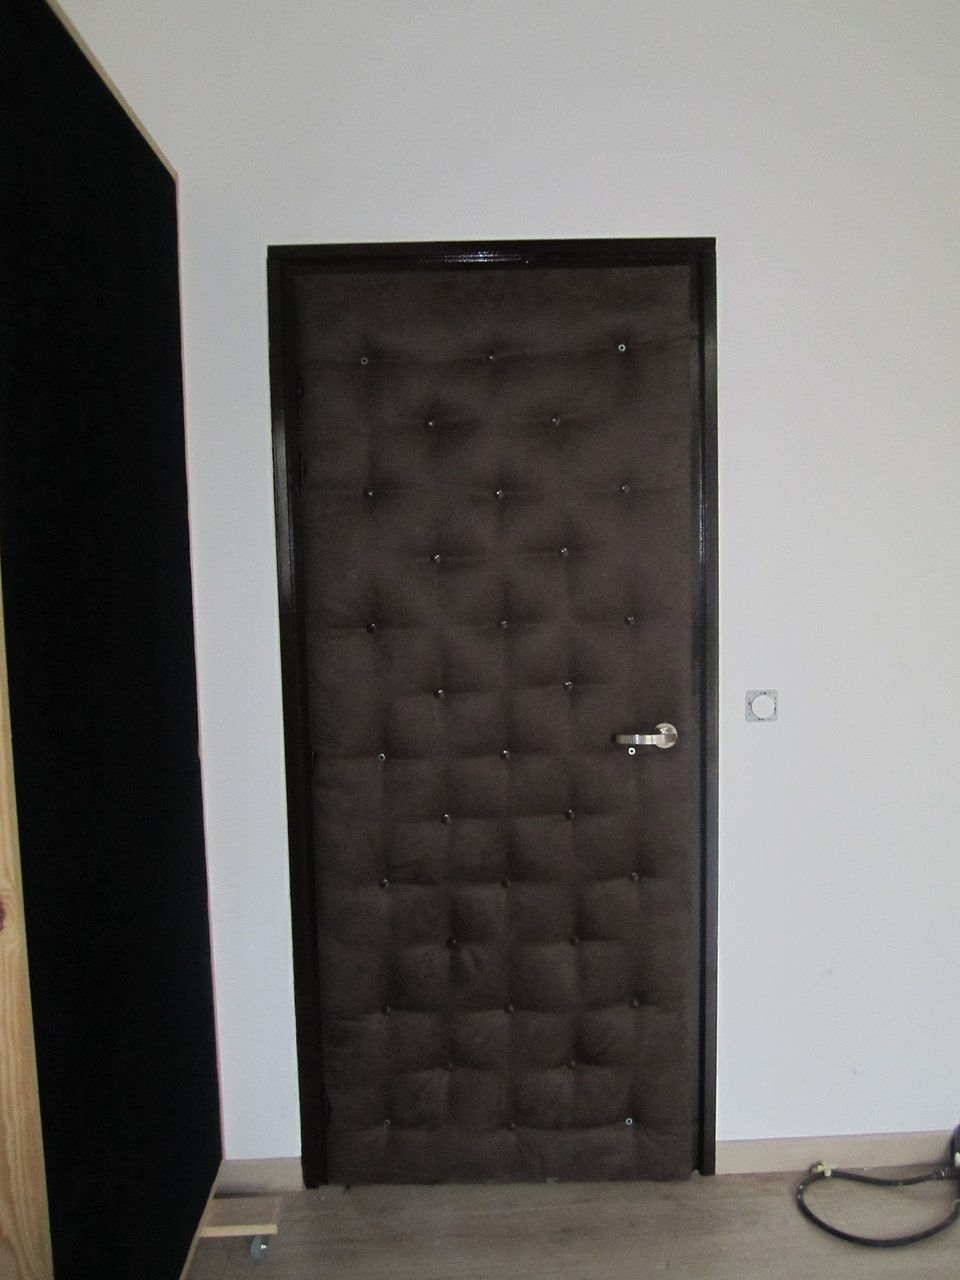 donna design d co mur capitonn houppa cabine dj marseille. Black Bedroom Furniture Sets. Home Design Ideas